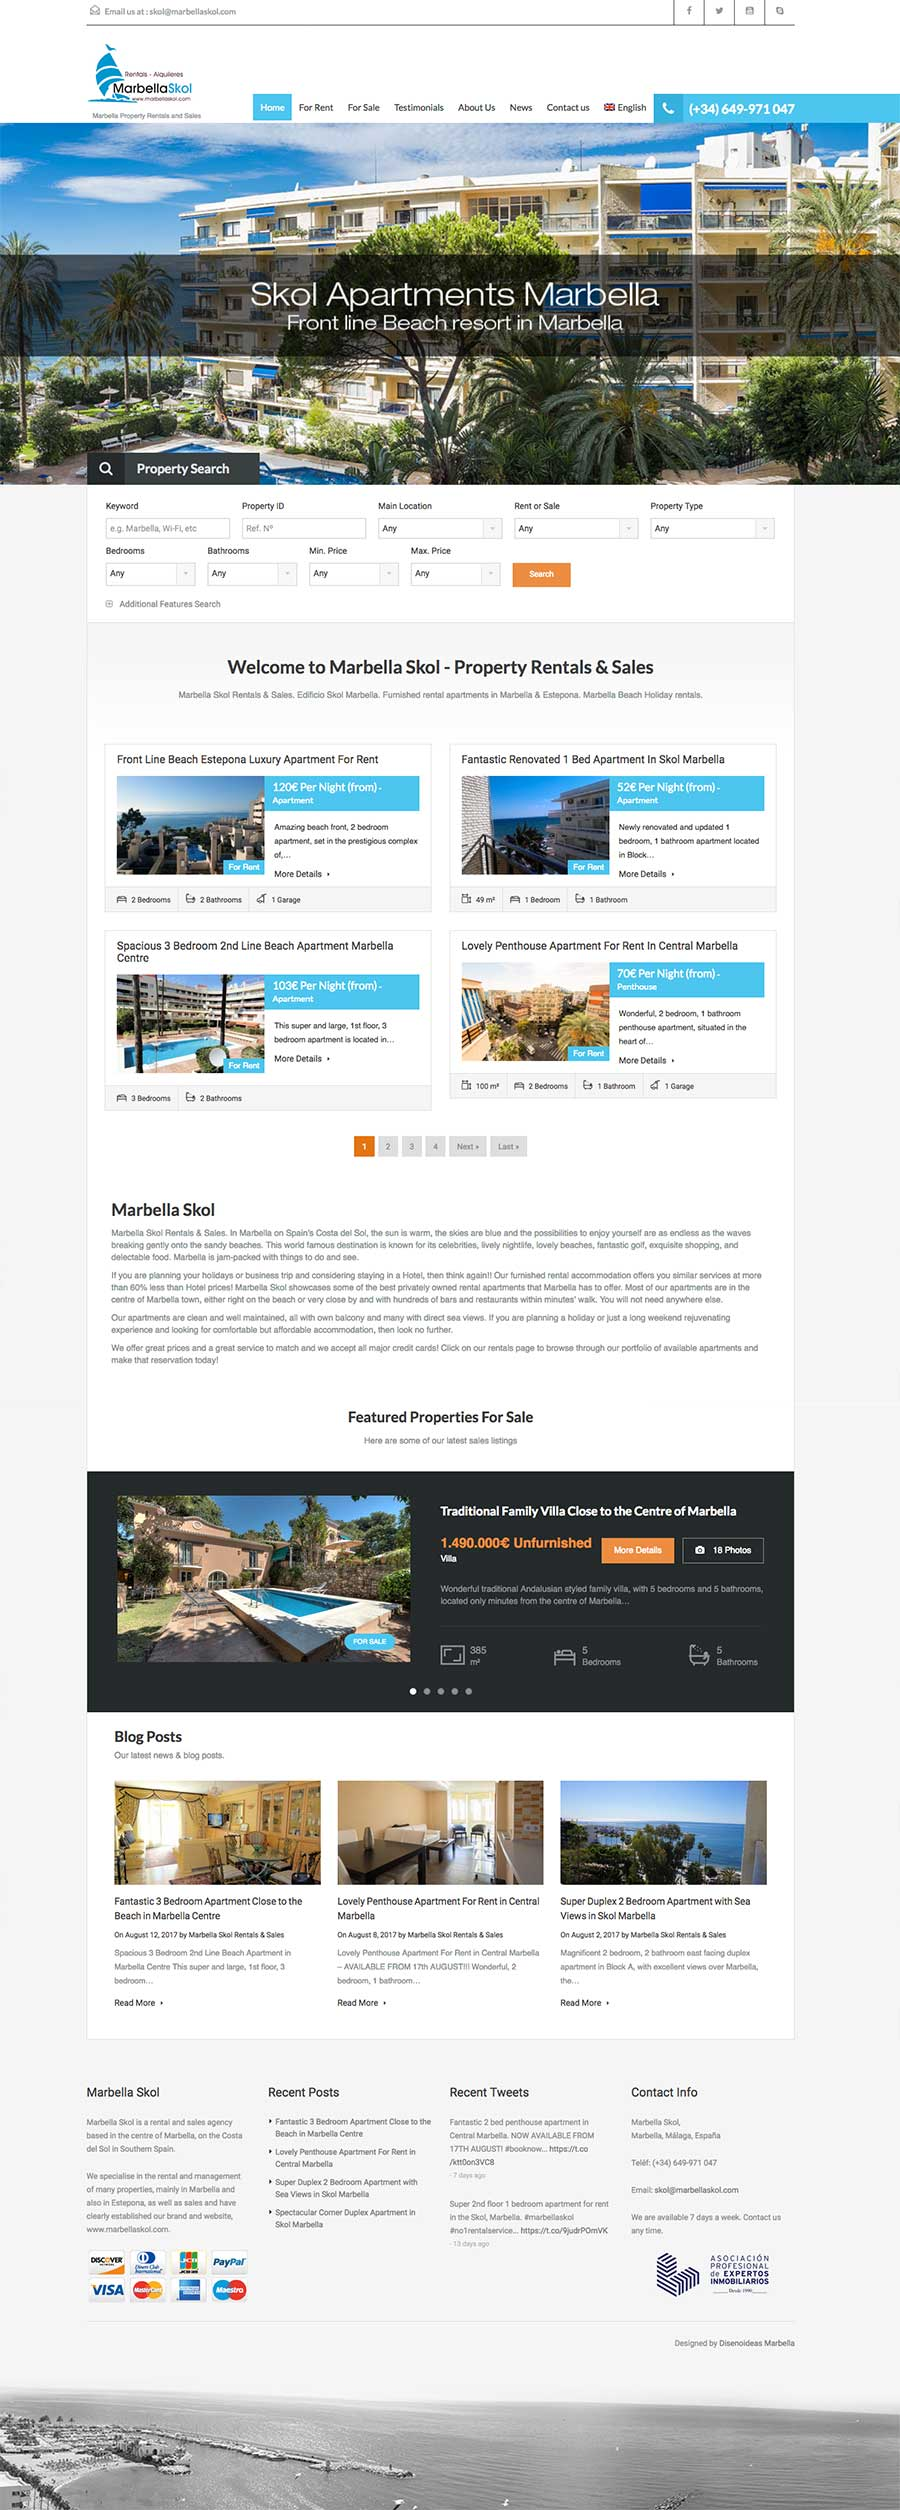 Real Estate Web Design marbella-skol-rentals-website-designers-marbella